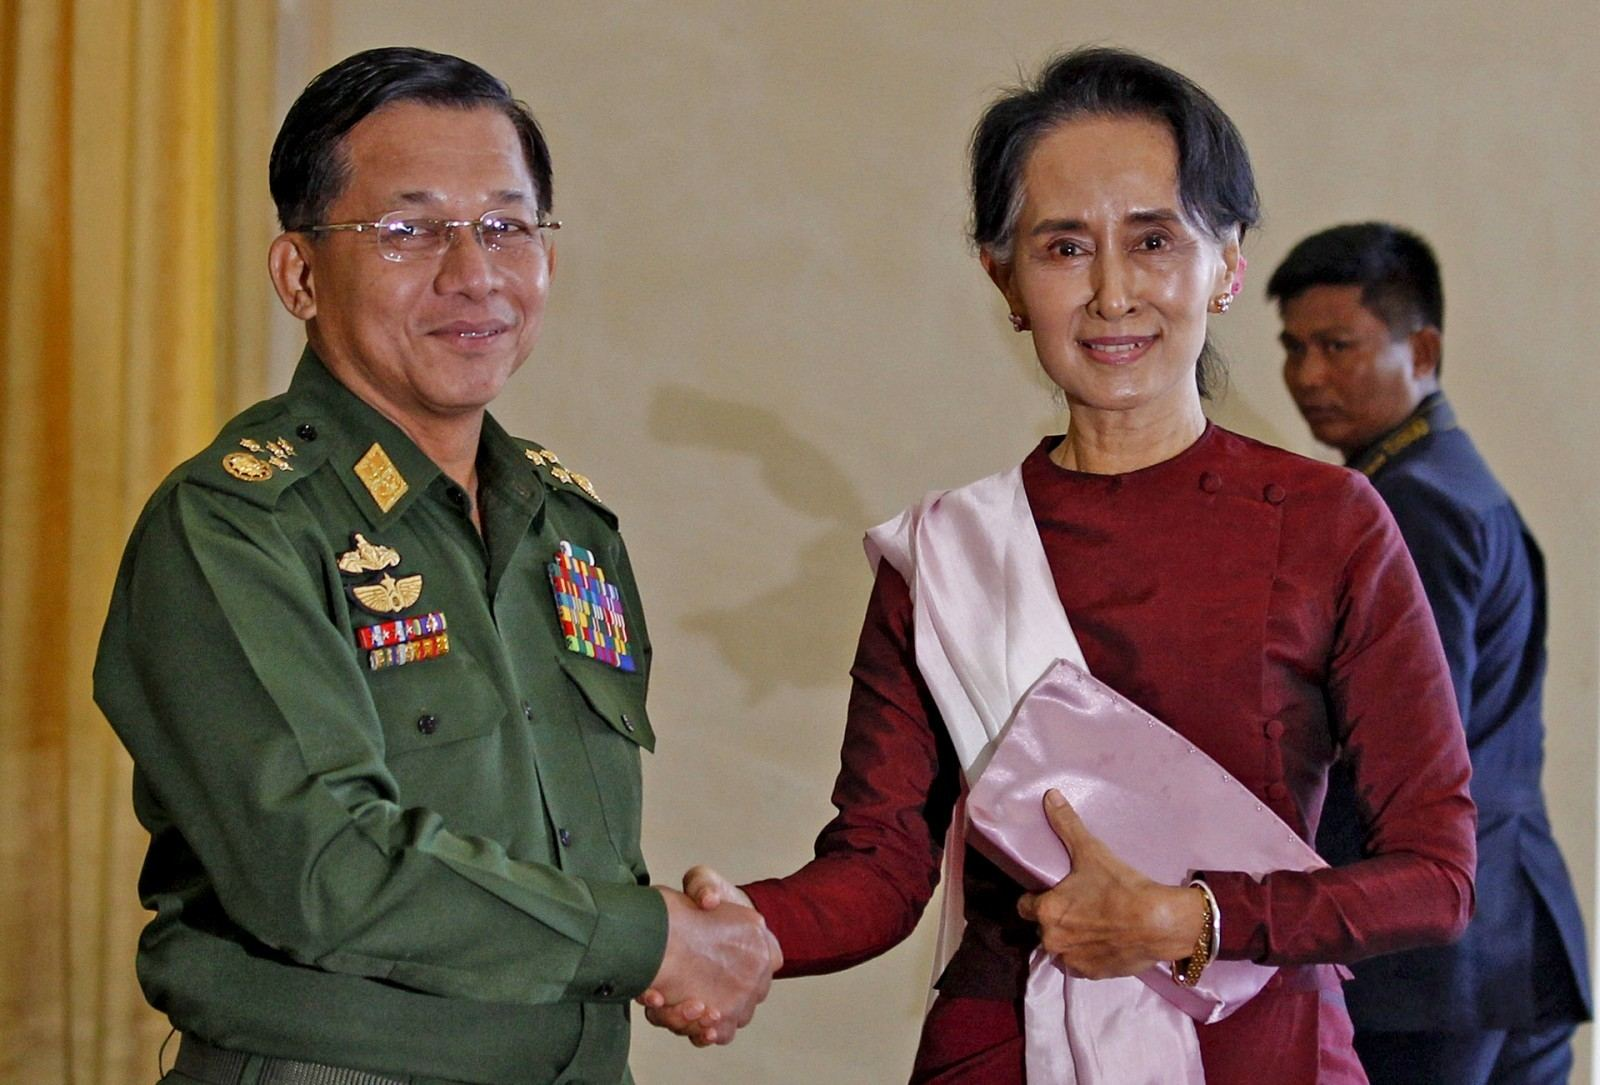 Myanmar: Sacked – Top general accused of involvement in Rohingya crackdown | The Thaiger